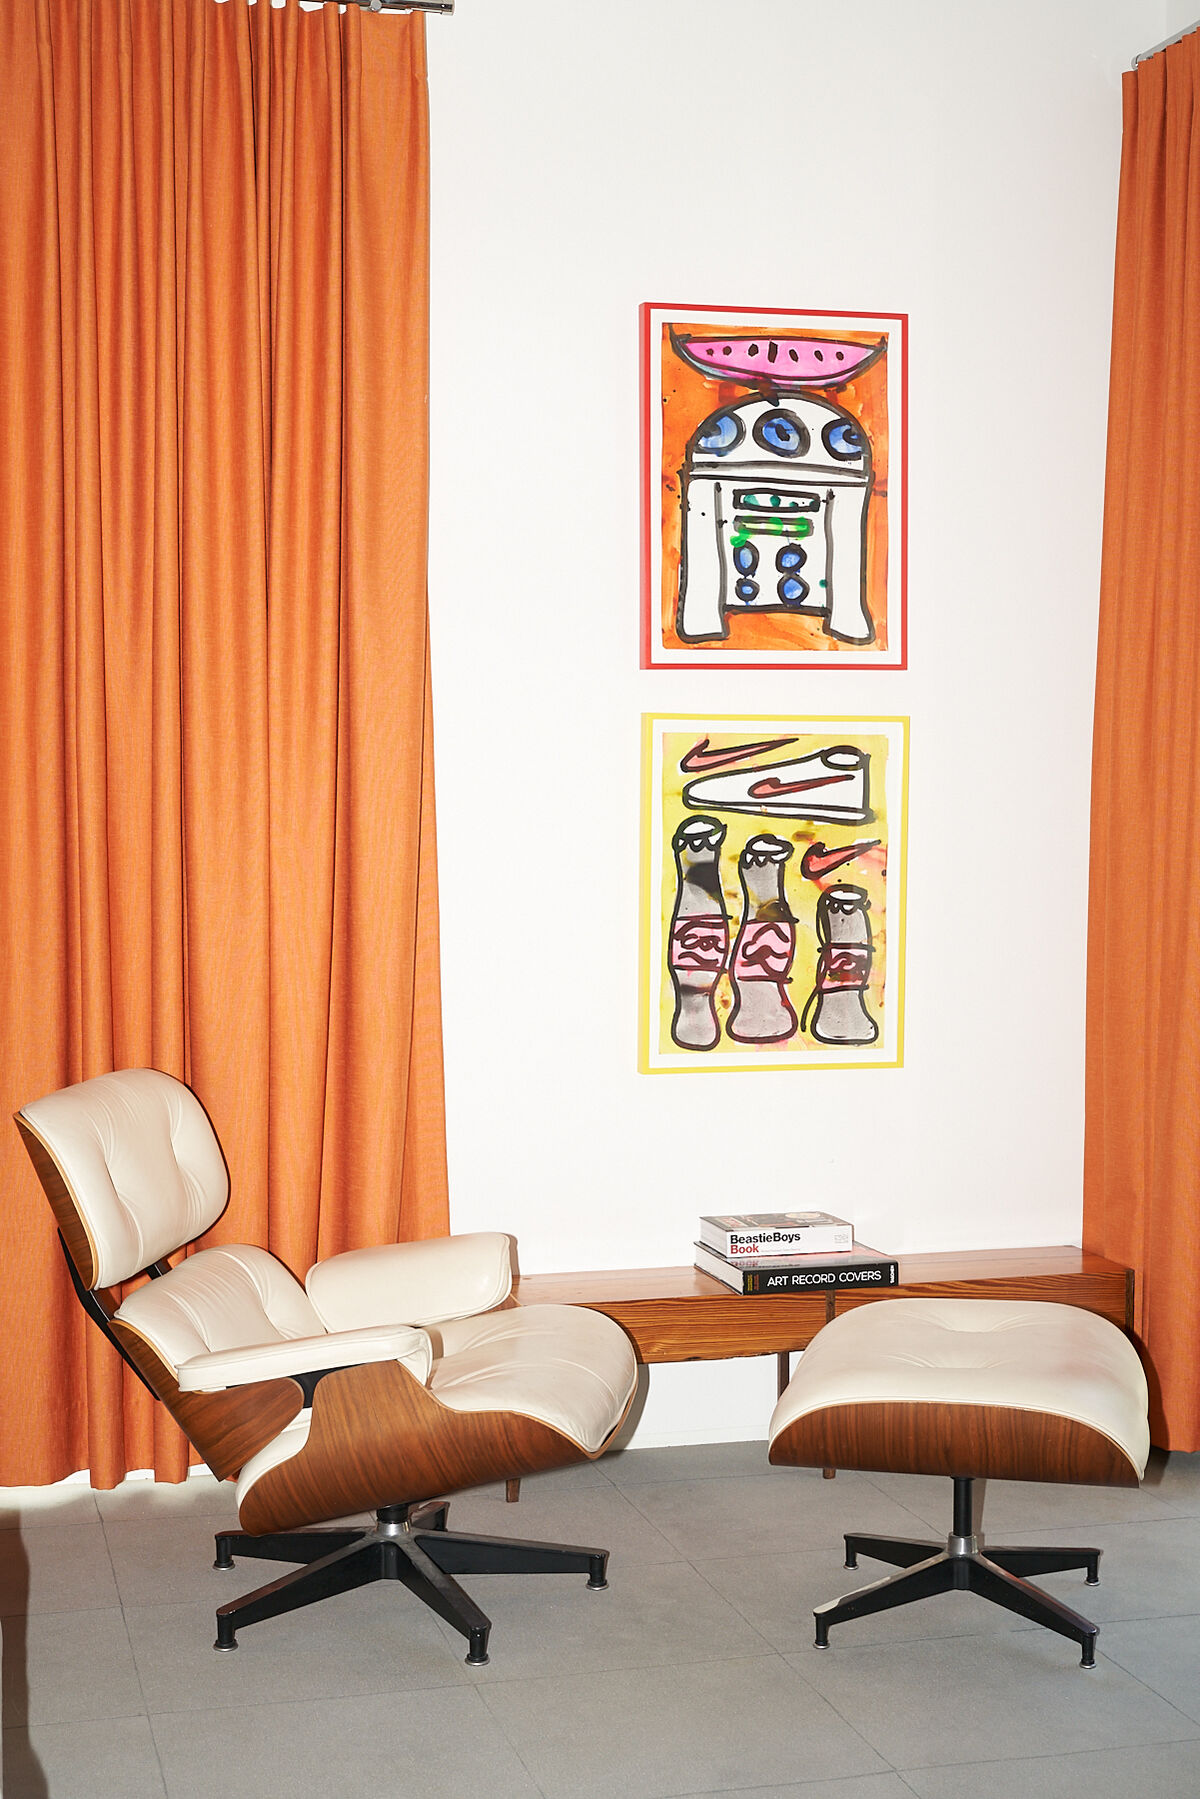 Interior view of Joe and Kristen Cole's Dallas home featuring artwork by Katherine Bernhardt. Photo by Katy Shayne. Courtesy of Joe and Kristen Cole.